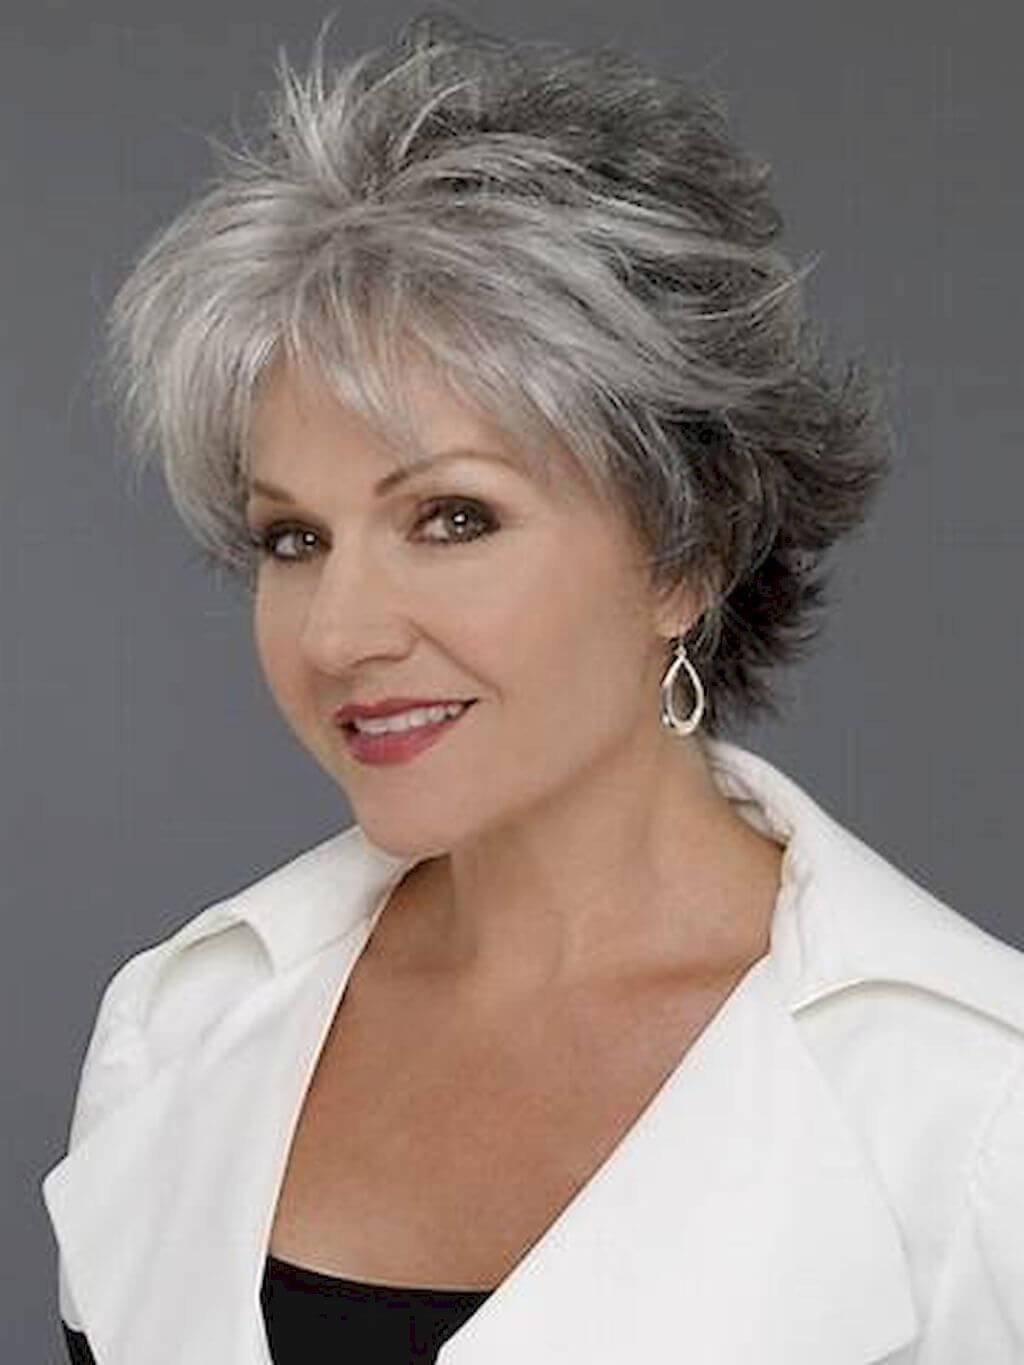 The Best 45 Sassy Hairstyles For Women Over 50 Pictures